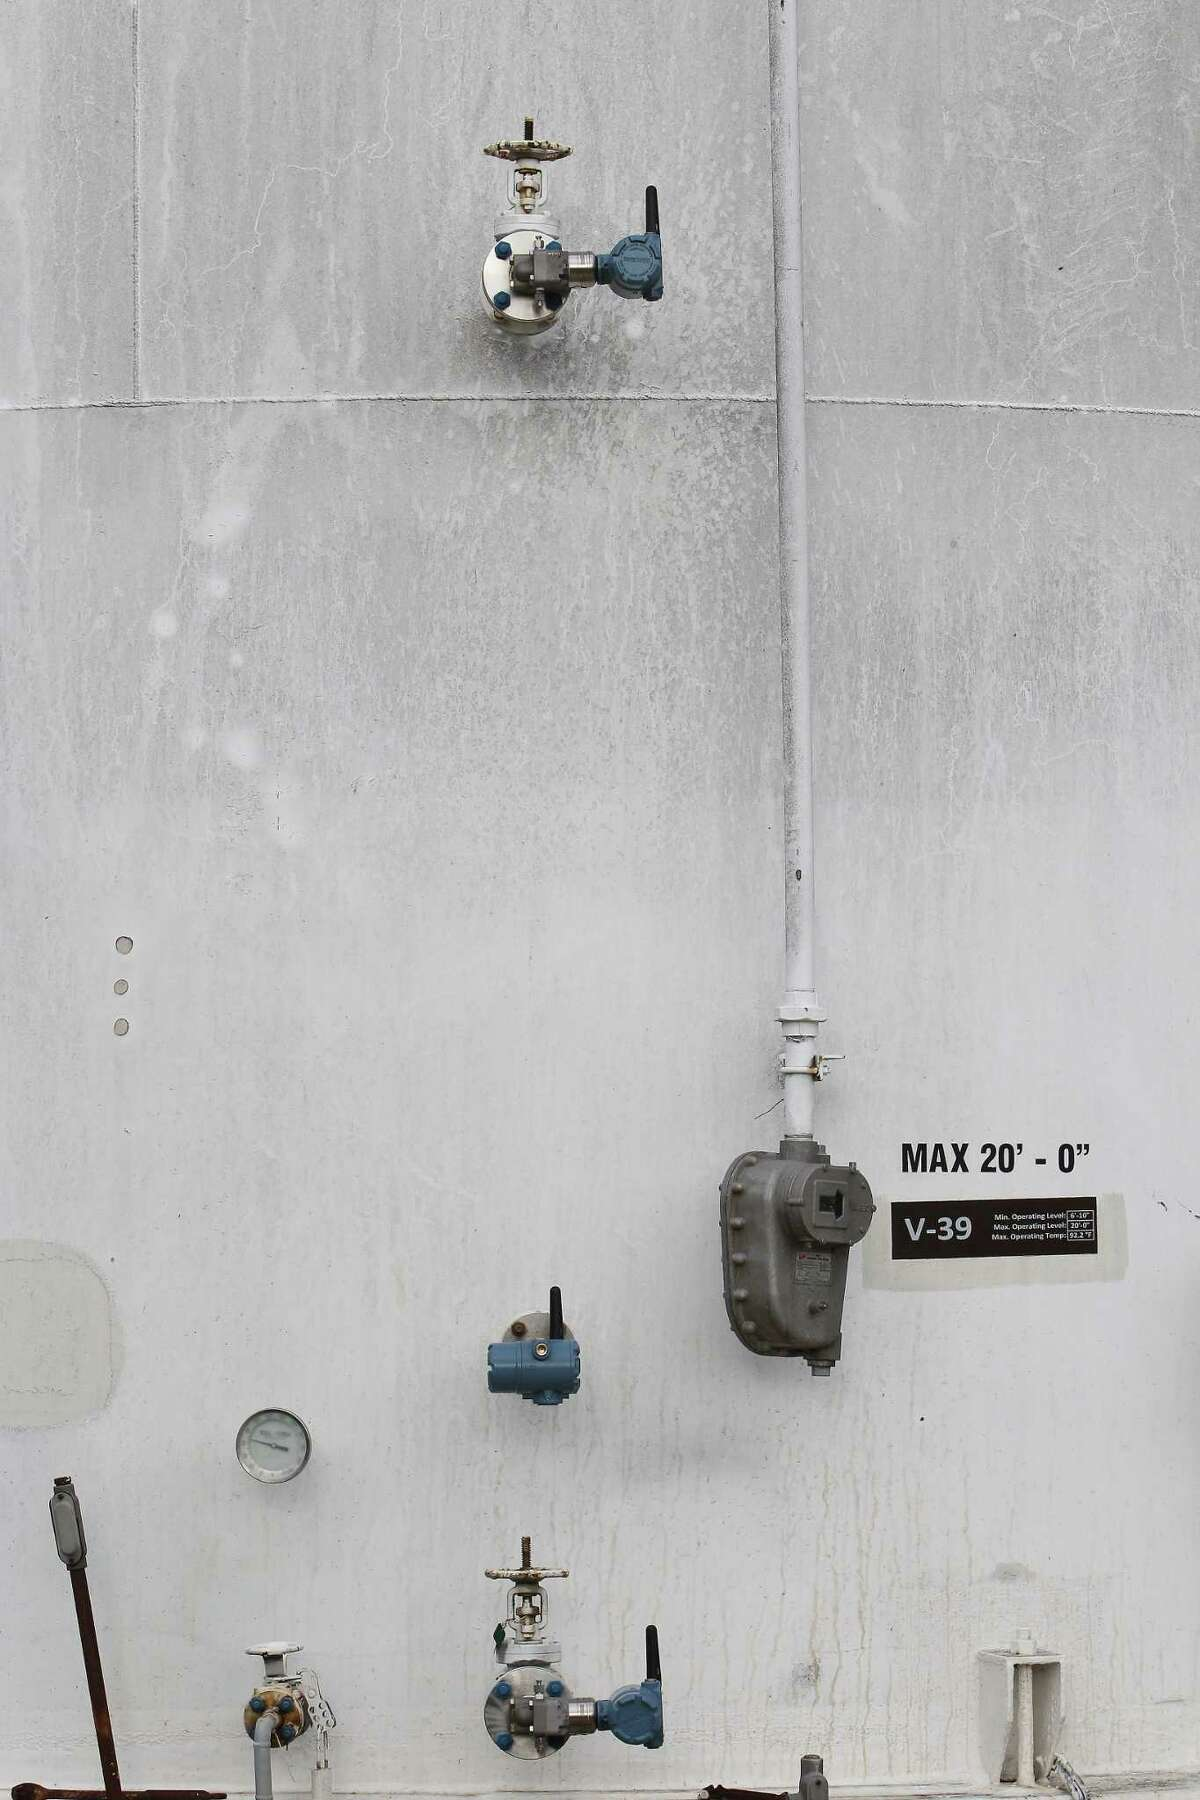 OXEA Corporation chemical plant has several wireless Rosemount pressure and temperature transmitters on a storage tank Thursday, March 30, 2017, in Bay City. Big industrial technology manufacturers are fighting for marketshare in the oil and gas industry, pushing oil and gas companies to go digital. ( Steve Gonzales / Houston Chronicle )